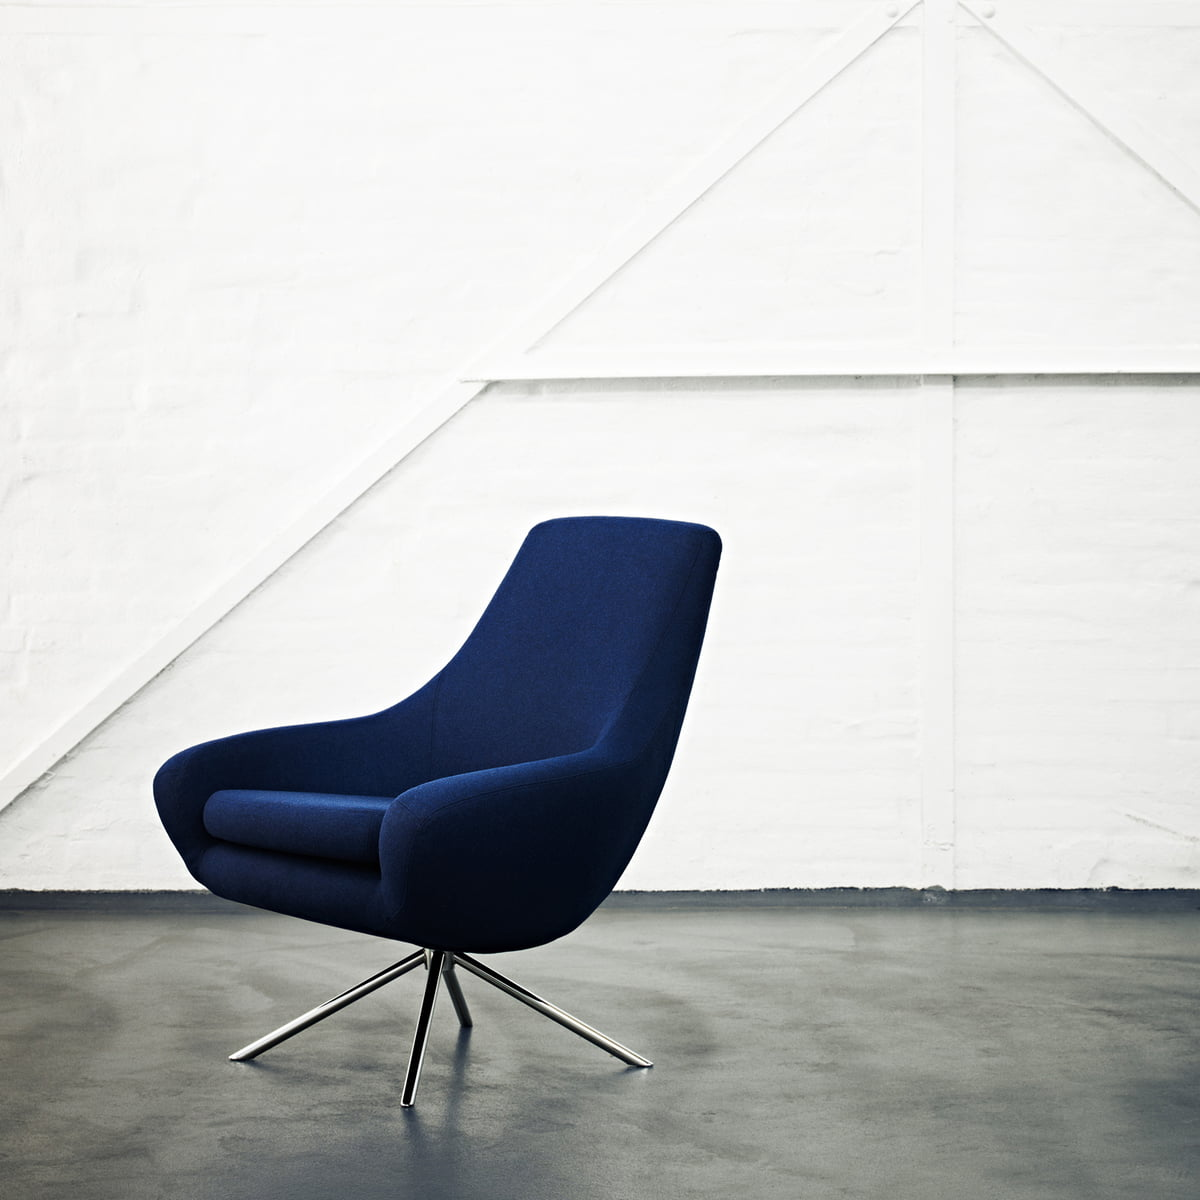 Stupendous Softline Noomi Lounge Fauteuil Vision Donkergrijs 439 Pdpeps Interior Chair Design Pdpepsorg